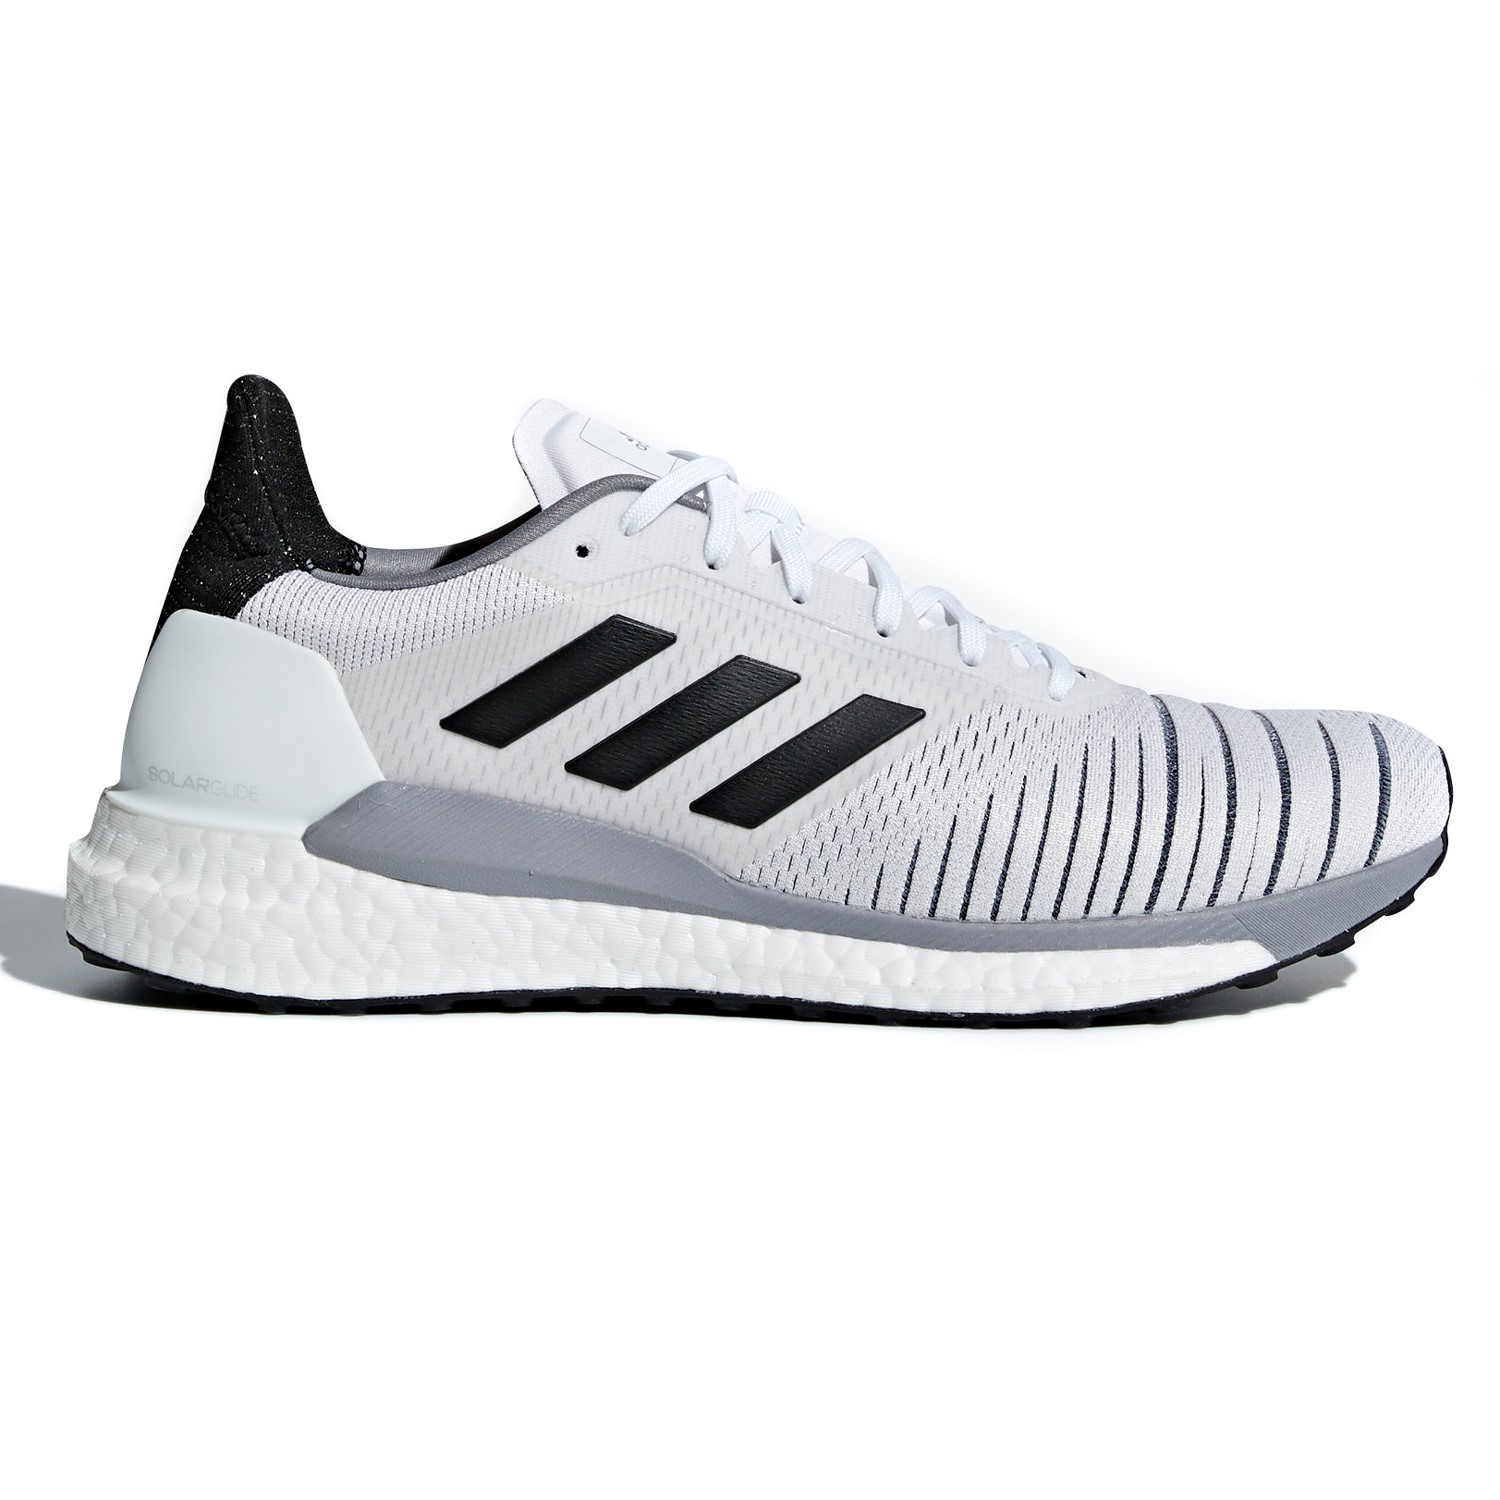 c2156bcb48b9c Adidas Solar Glide - Mens Running Shoes - White Core Black Grey ...